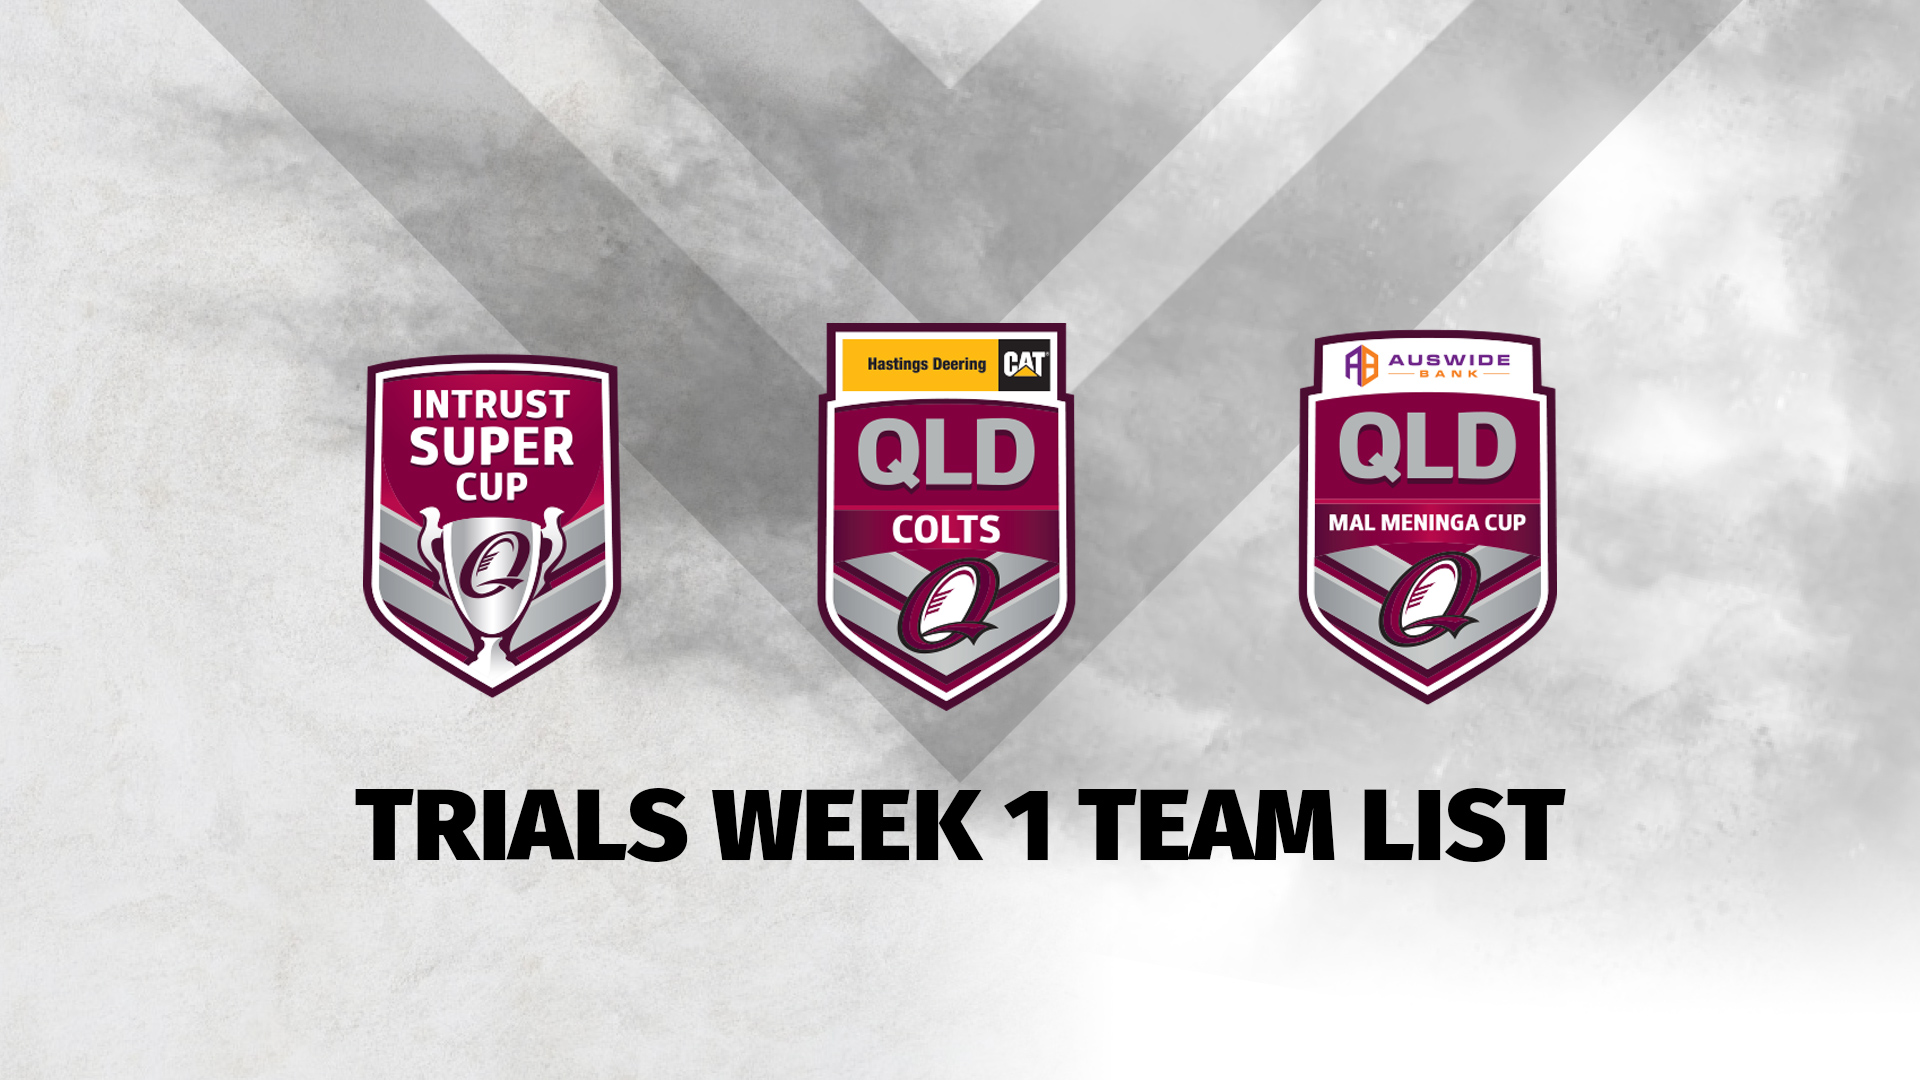 2020 Trials Week 1 Team List